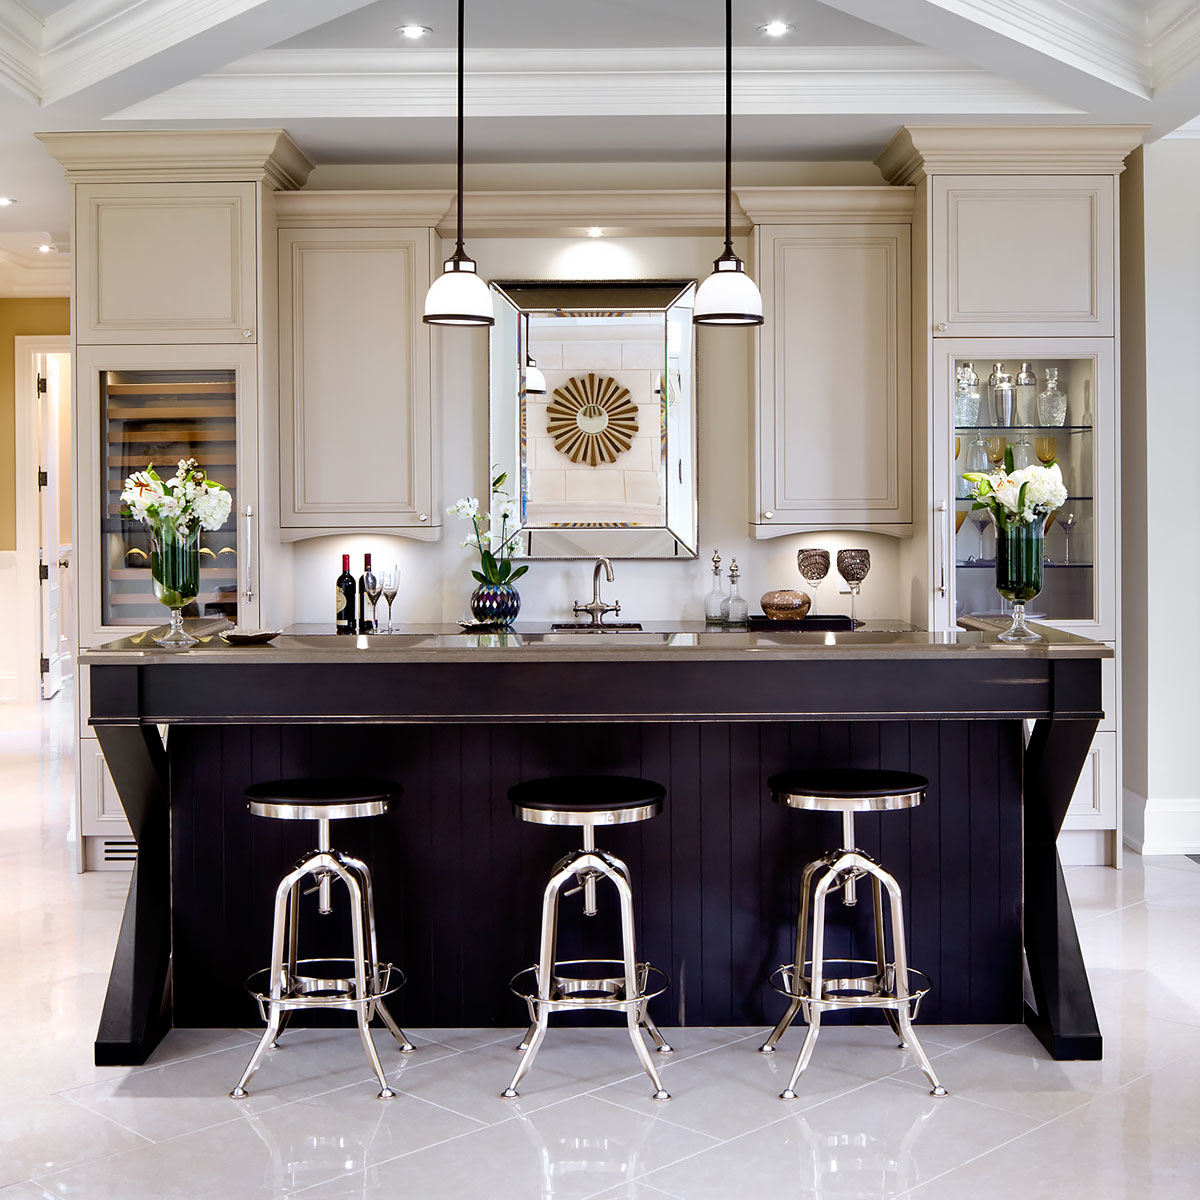 kitchen desing brushed nickel pendant lighting kitchens jane lockhart interior design